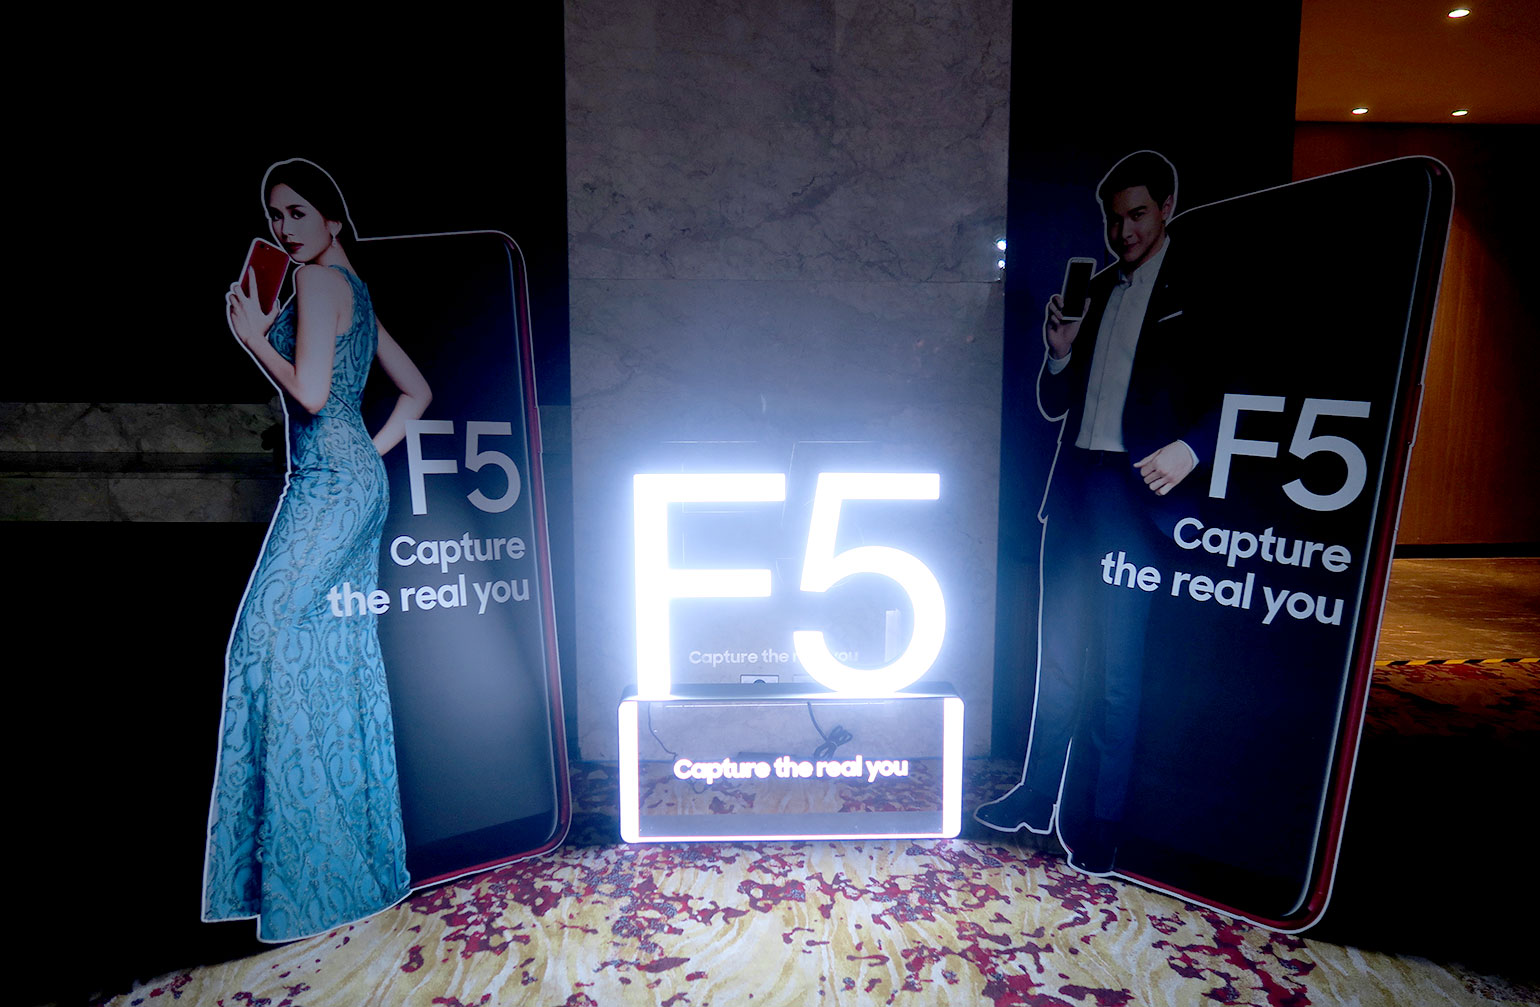 3 OPPO F5 Review - Selfie Expert - Capture The Real You - Gen-zel She Sings Beauty